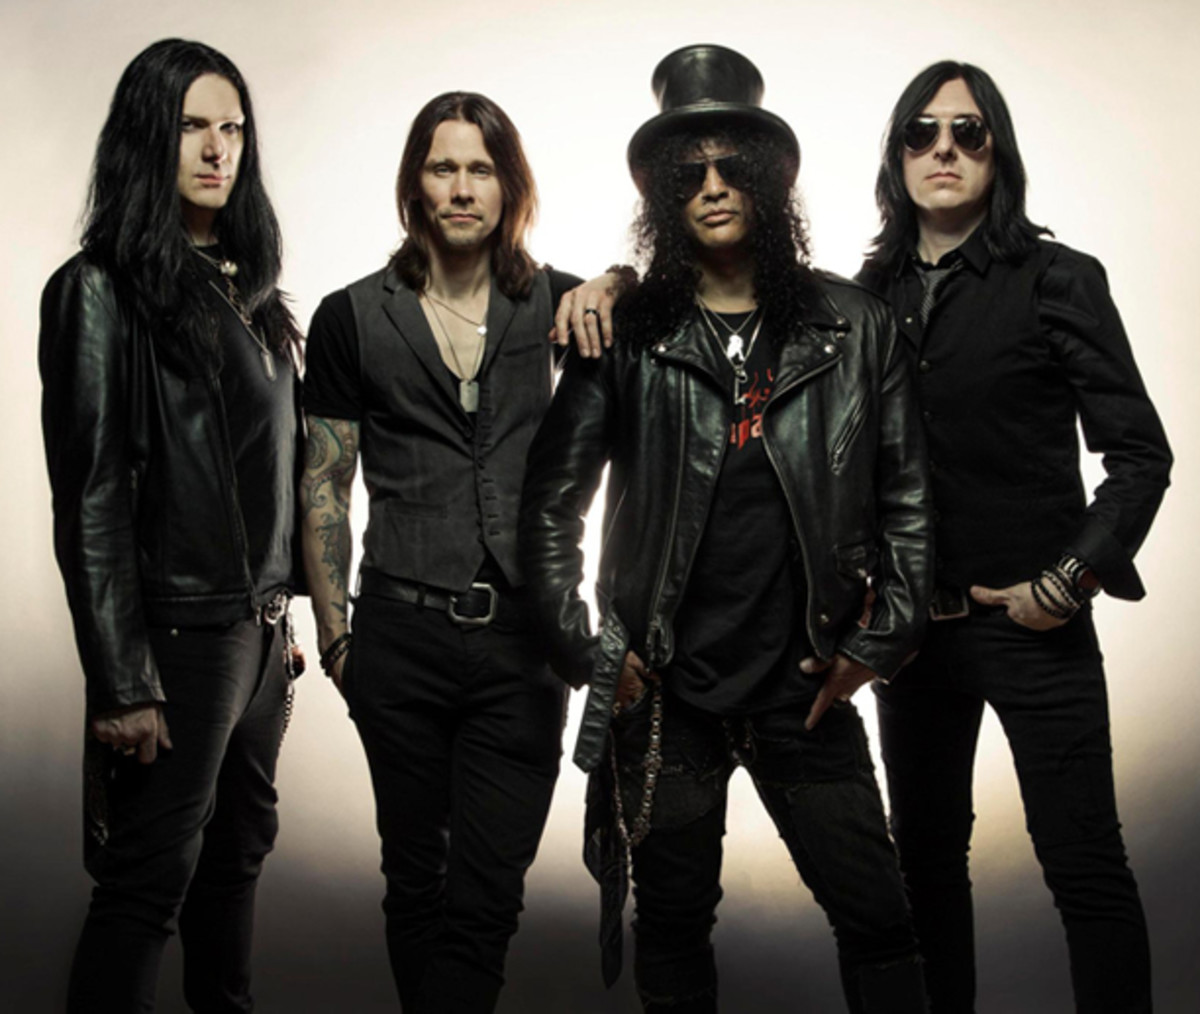 Slash featuring Myles Kennedy and The Conspirators publicity photo by Travis Shinn